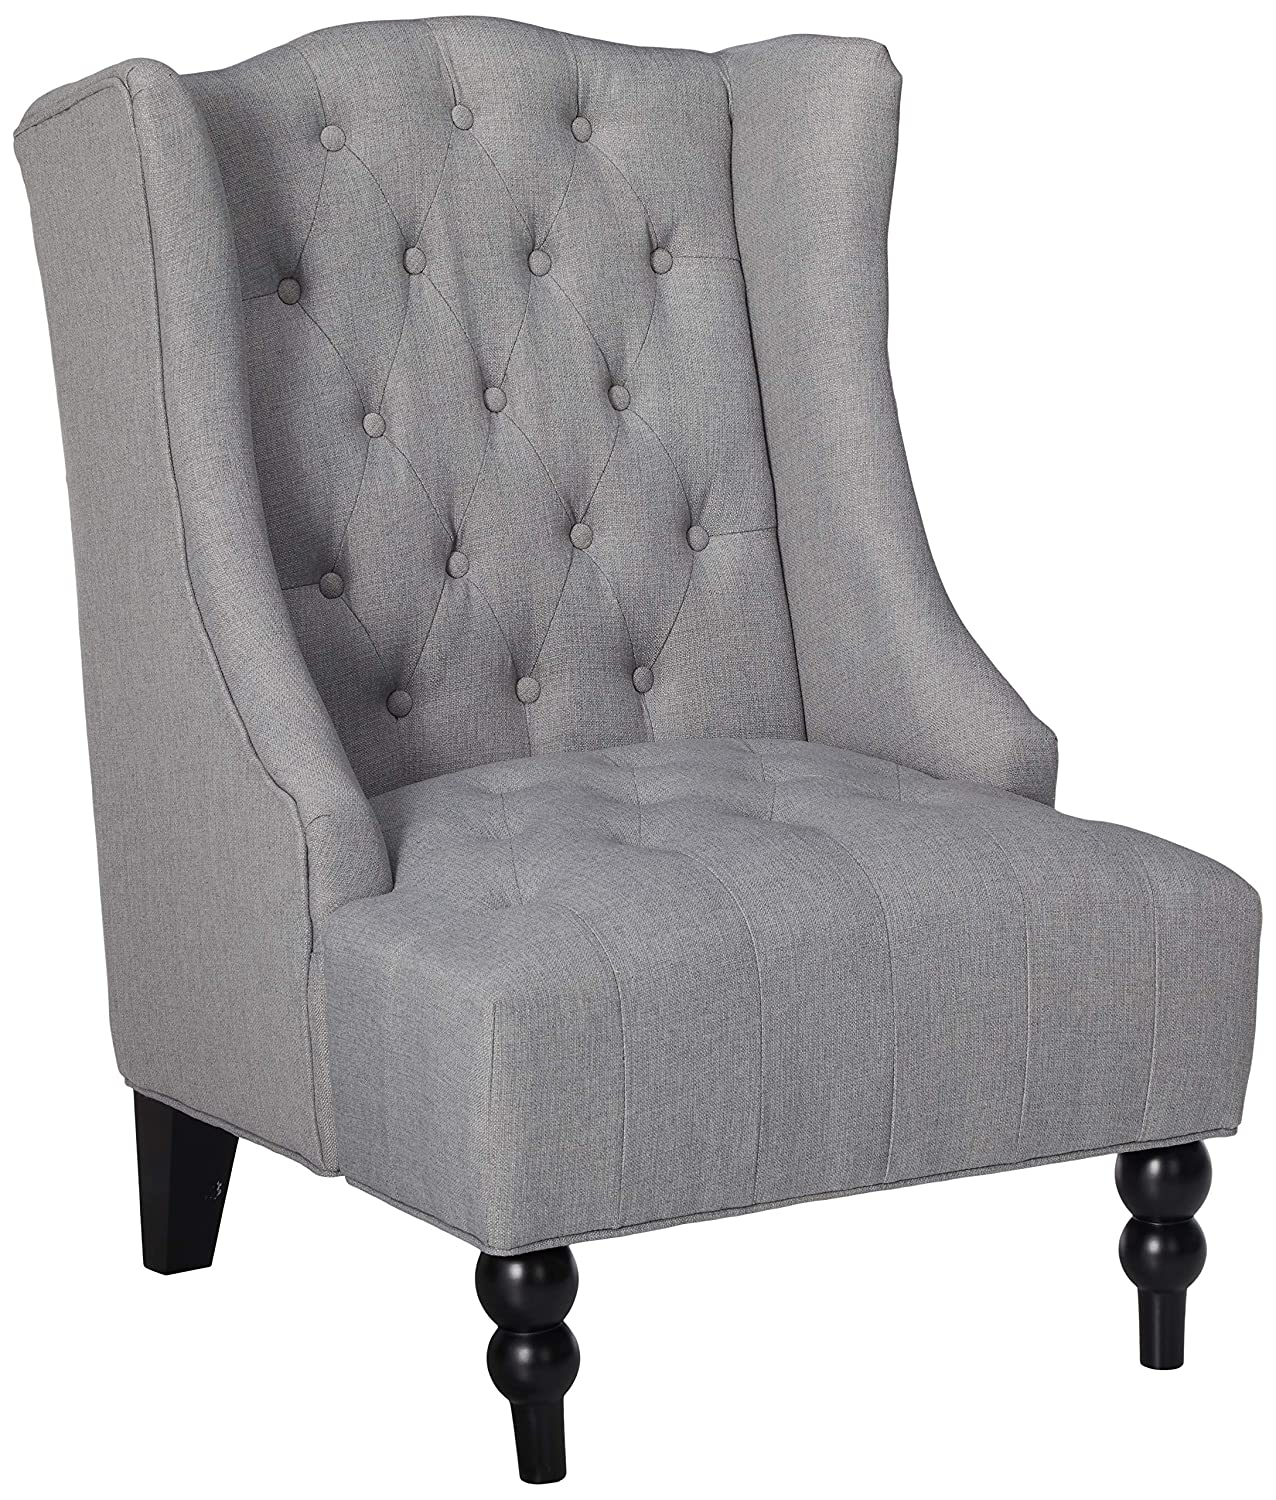 Amazon com great deal furniture clarice tall wingback tufted fabric accent chair vintage club seat for living room silver home kitchen